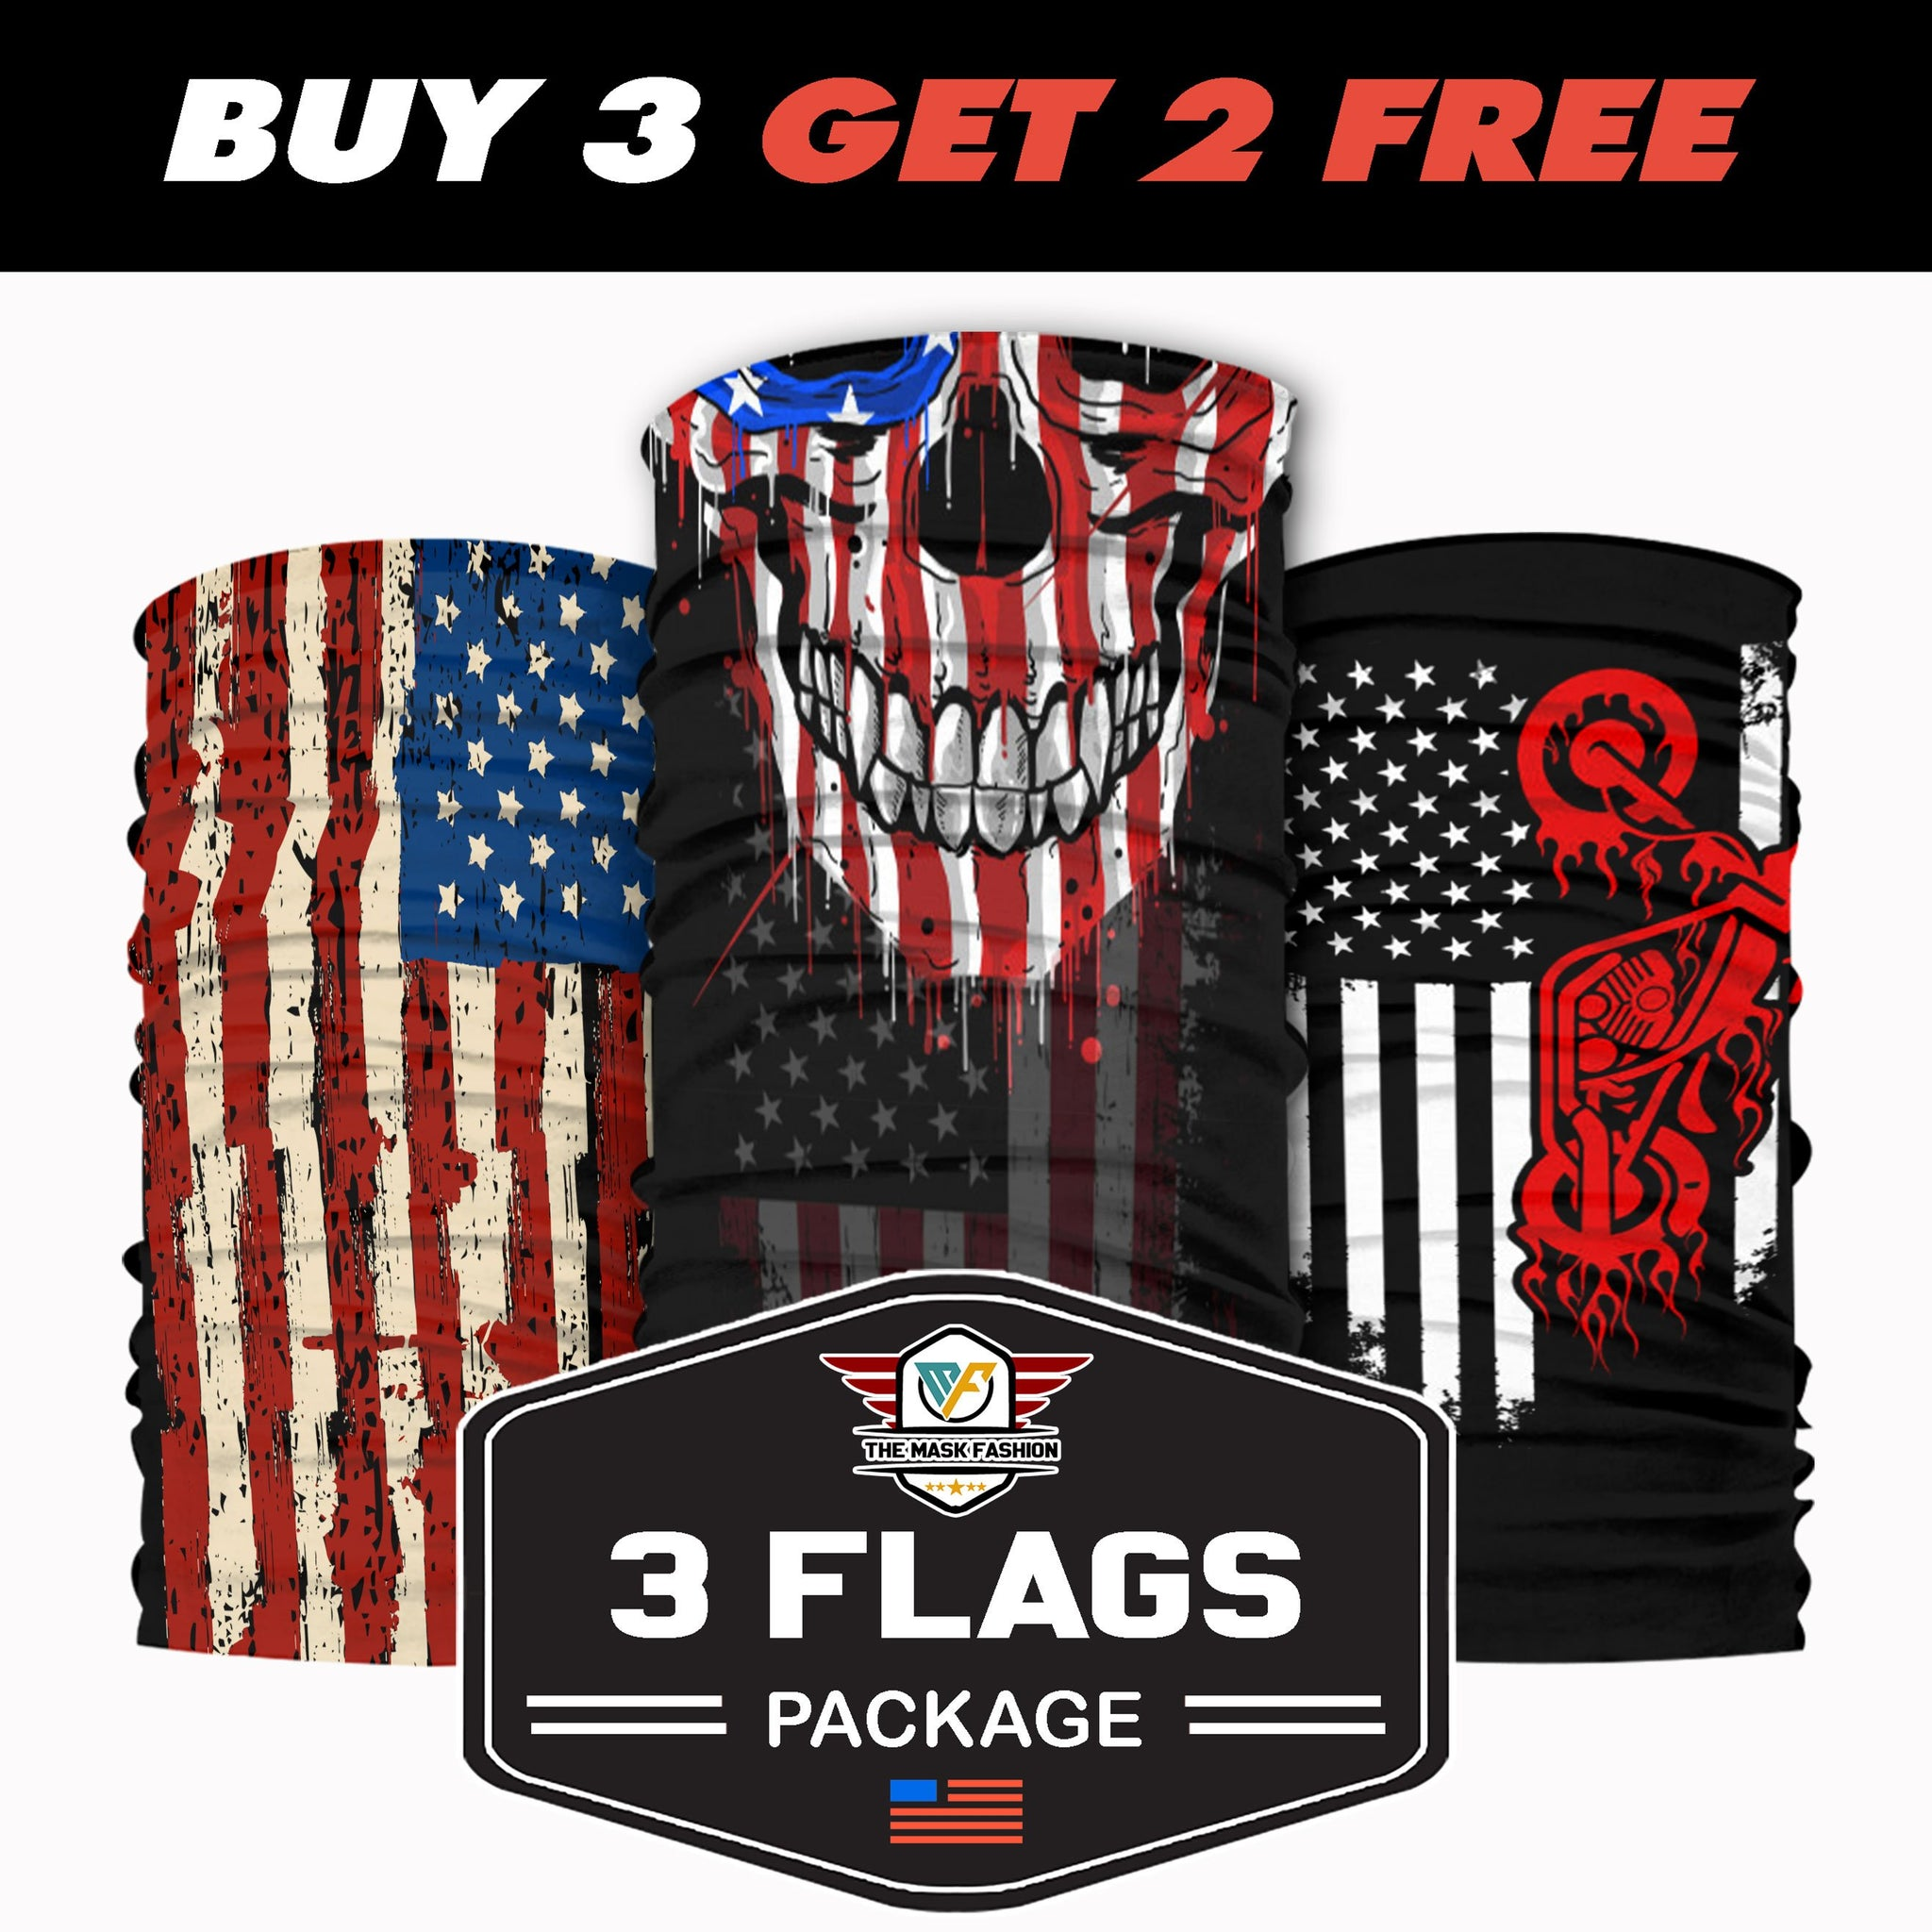 3-Flags Package 13